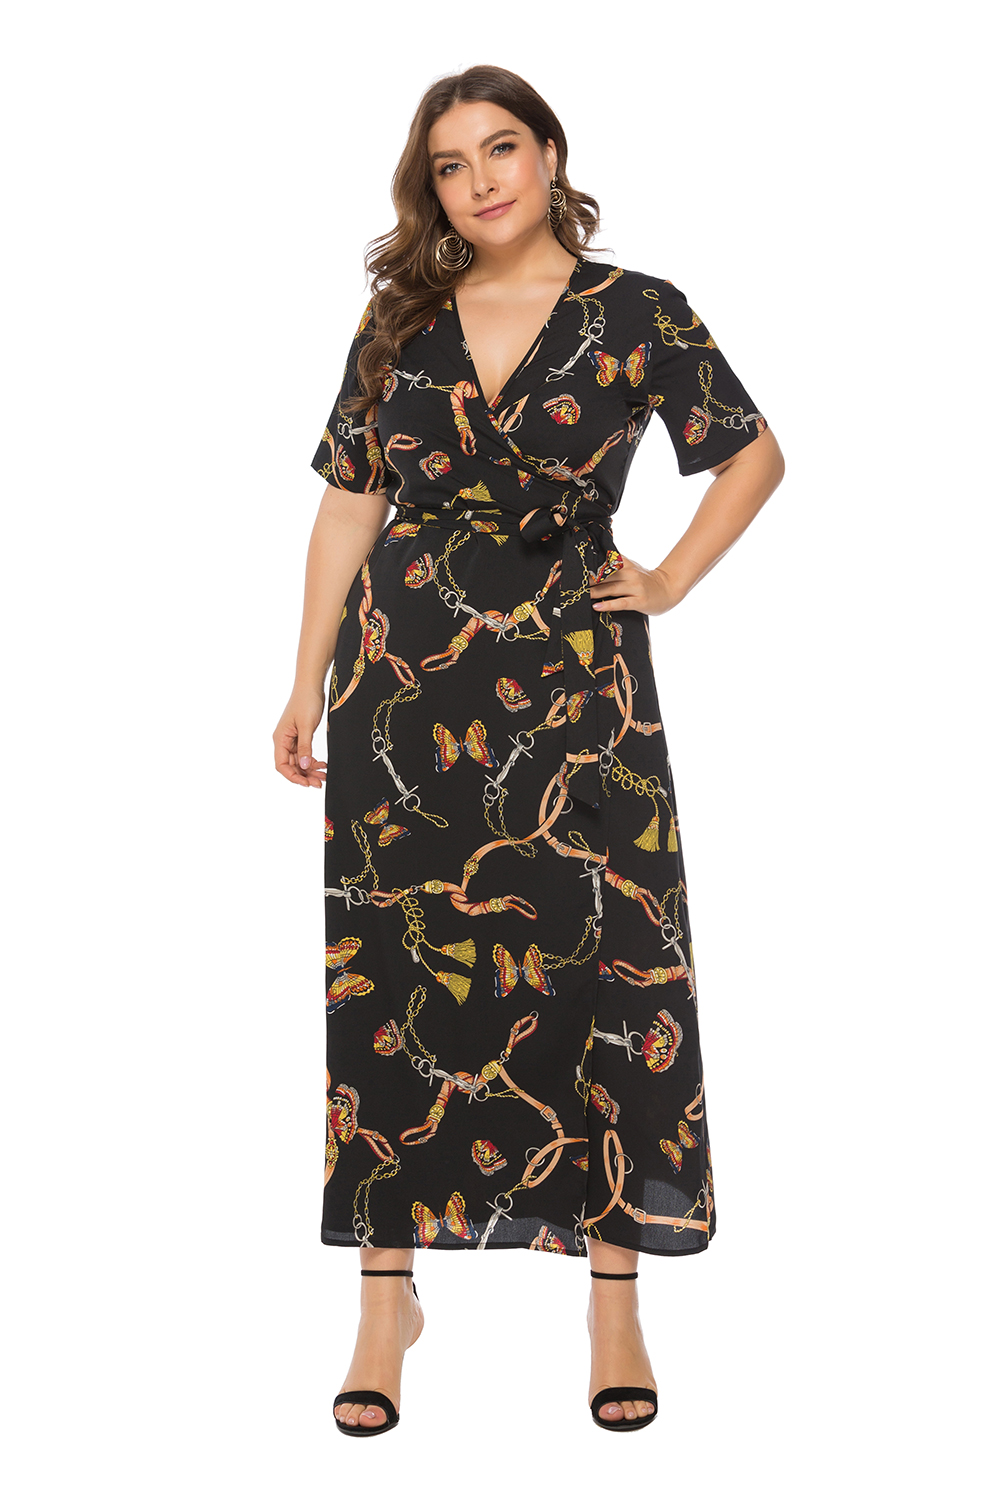 52aef0ebc70 Plus Size Wrap Maxi Dress - Data Dynamic AG